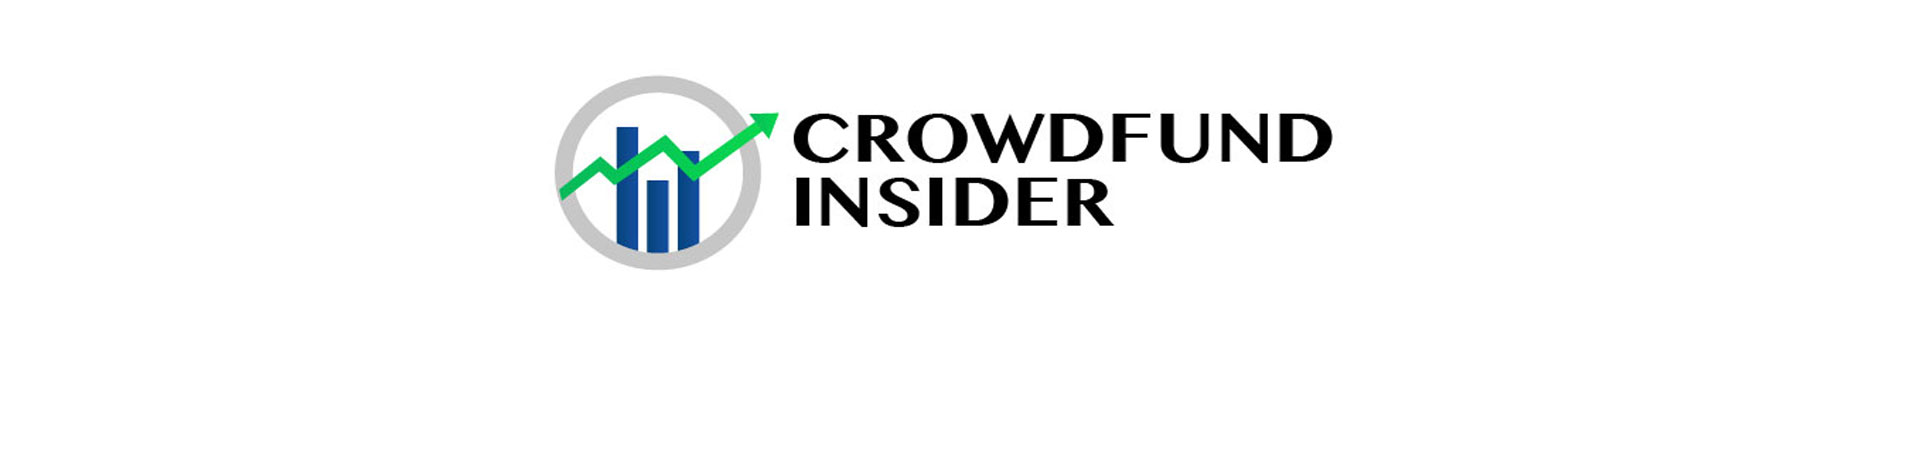 CROWDFUND INSIDER: OurCrowd will Attend AIPAC Conference to Showcase Israeli Startups